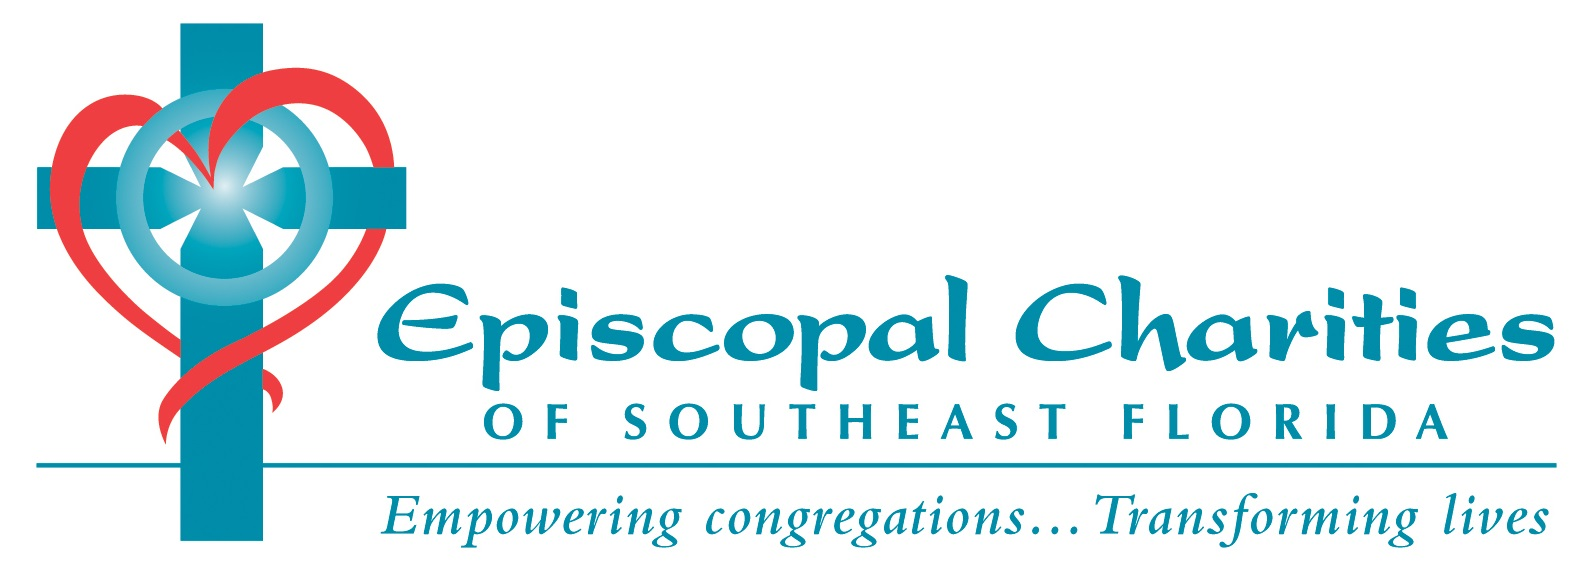 Episcopal Charities of Southeast Florida